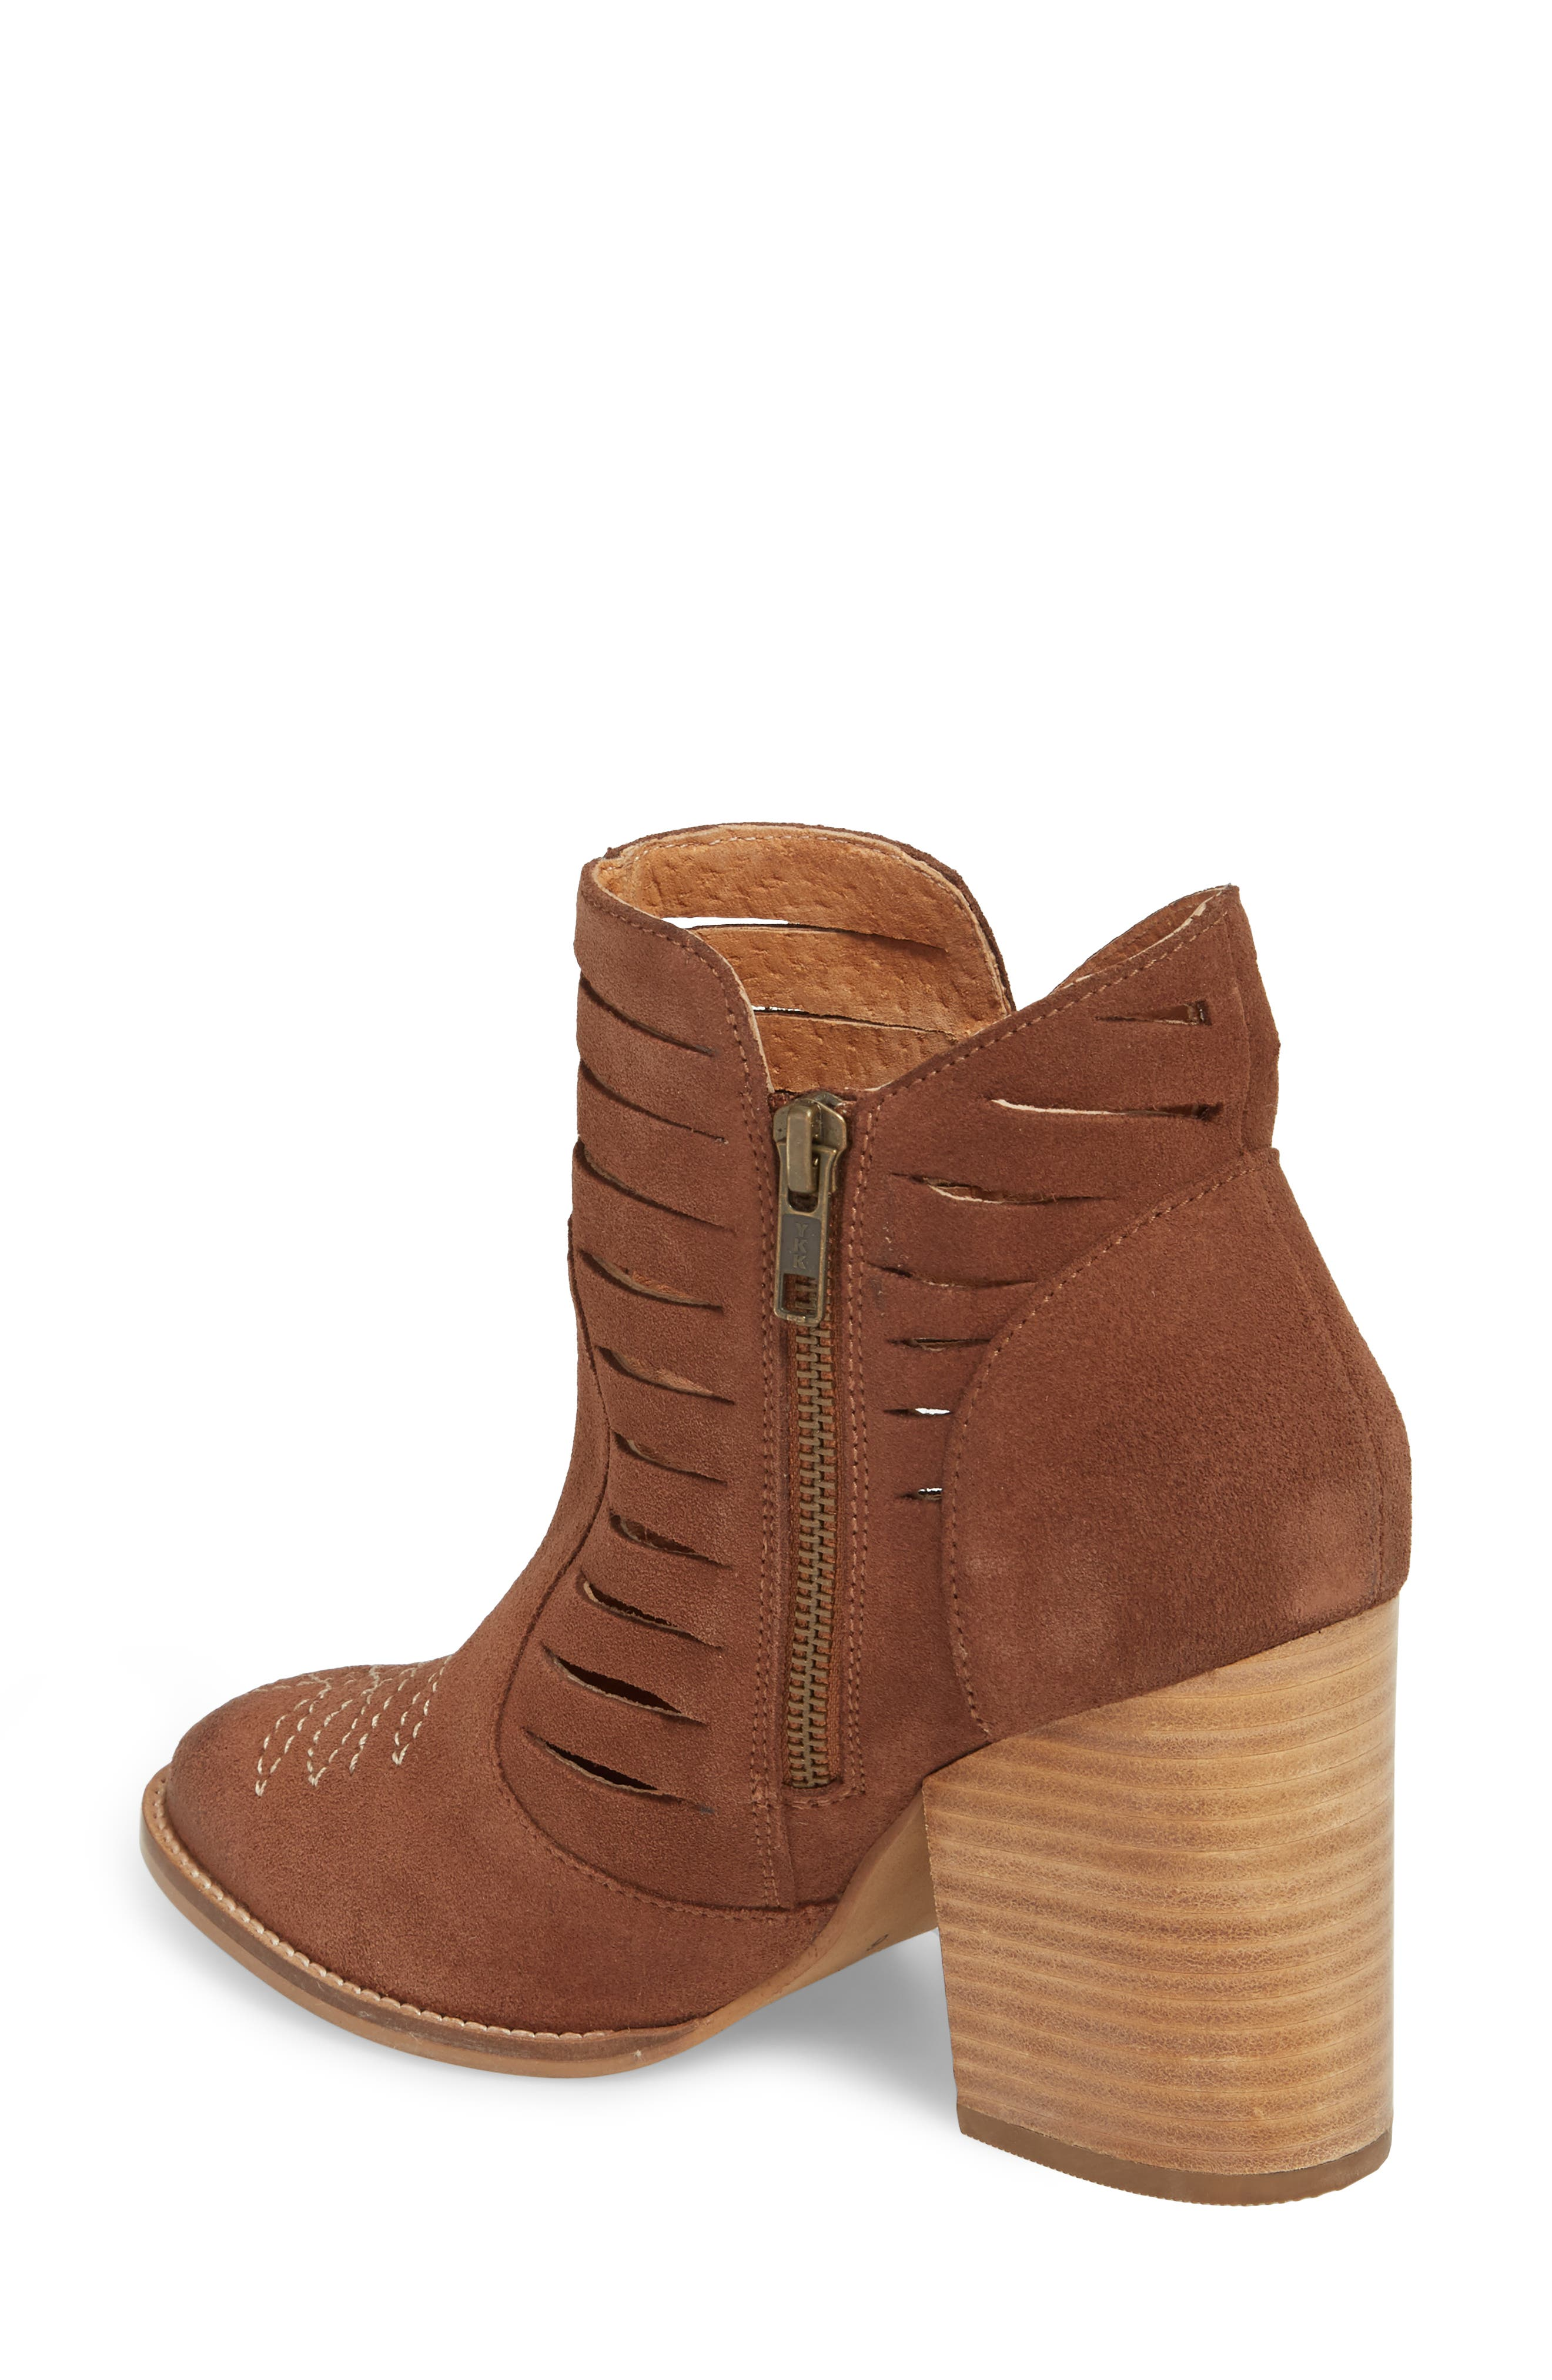 Adriana Western Bootie,                             Alternate thumbnail 2, color,